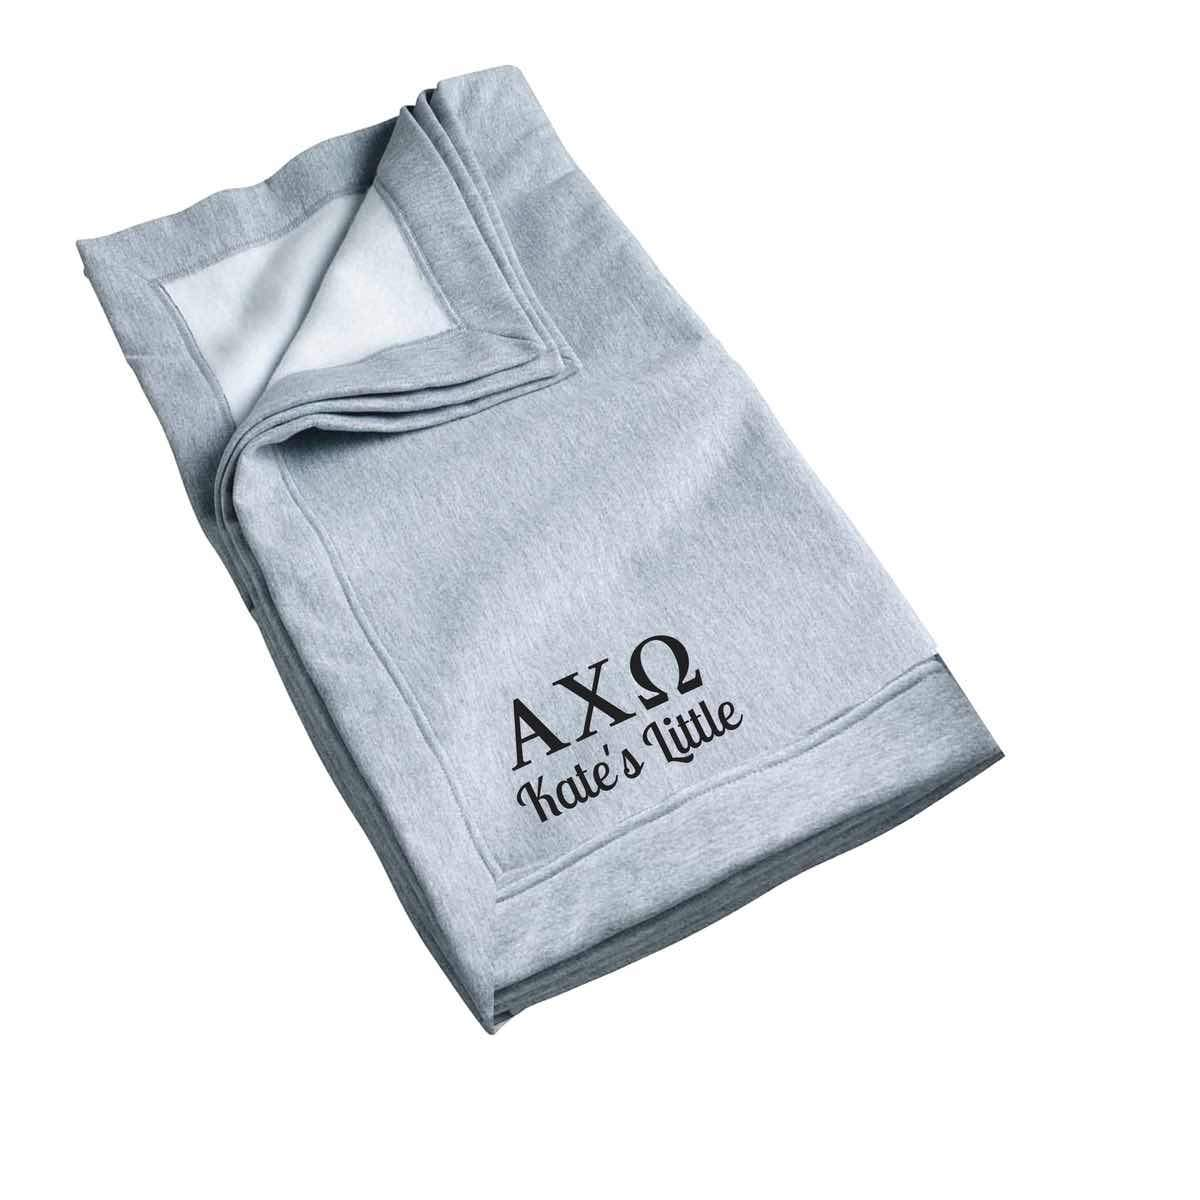 Alpha Chi Omega Little Blanket, Recommended One Size Fits All Personalized Big Little Gift